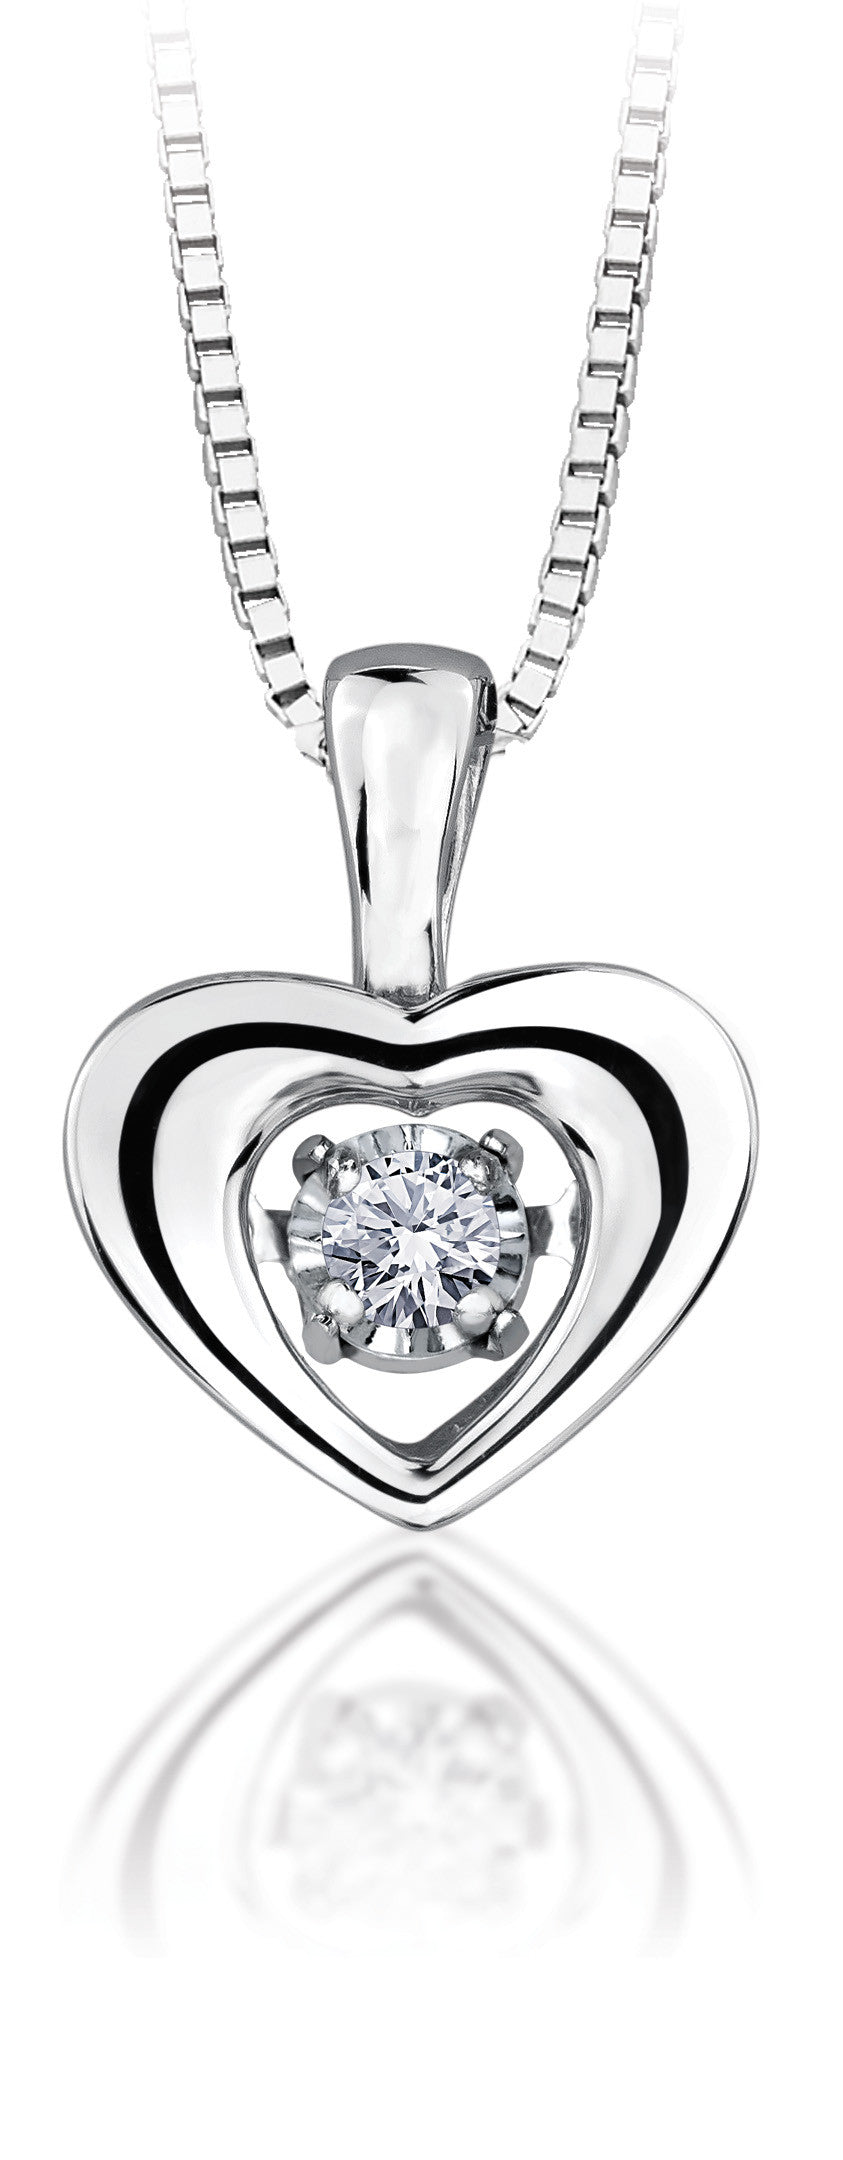 10Kt White Gold Double Heart Diamond Pendant PLT27076WDWP12